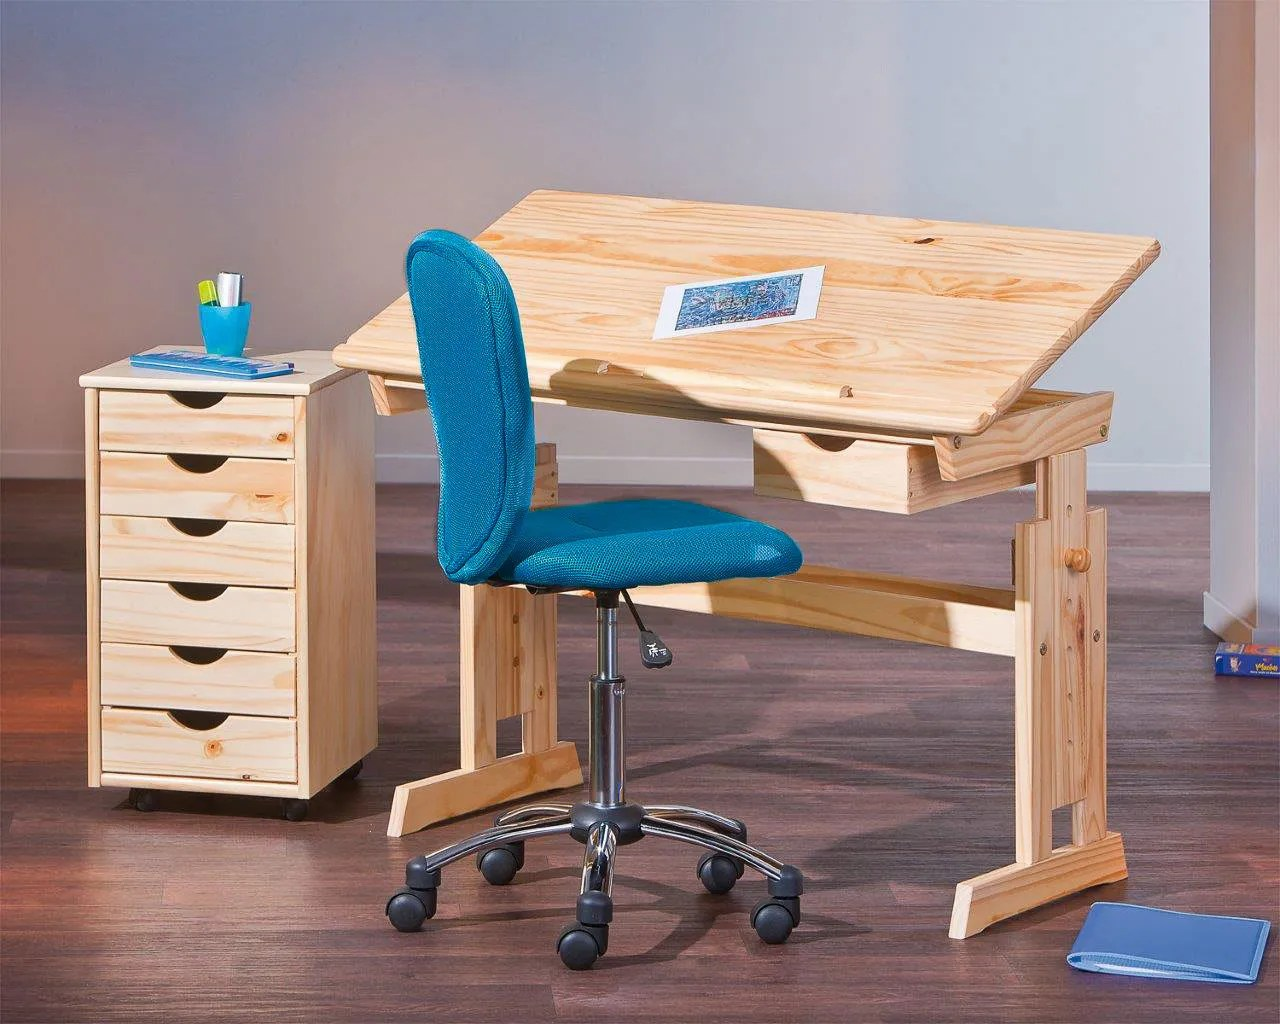 Https Www Trendmoebel24 De Kinderschreibtisch Set Julia Rollcontainer Nils Stuhl Mali Blau 99910851 7890